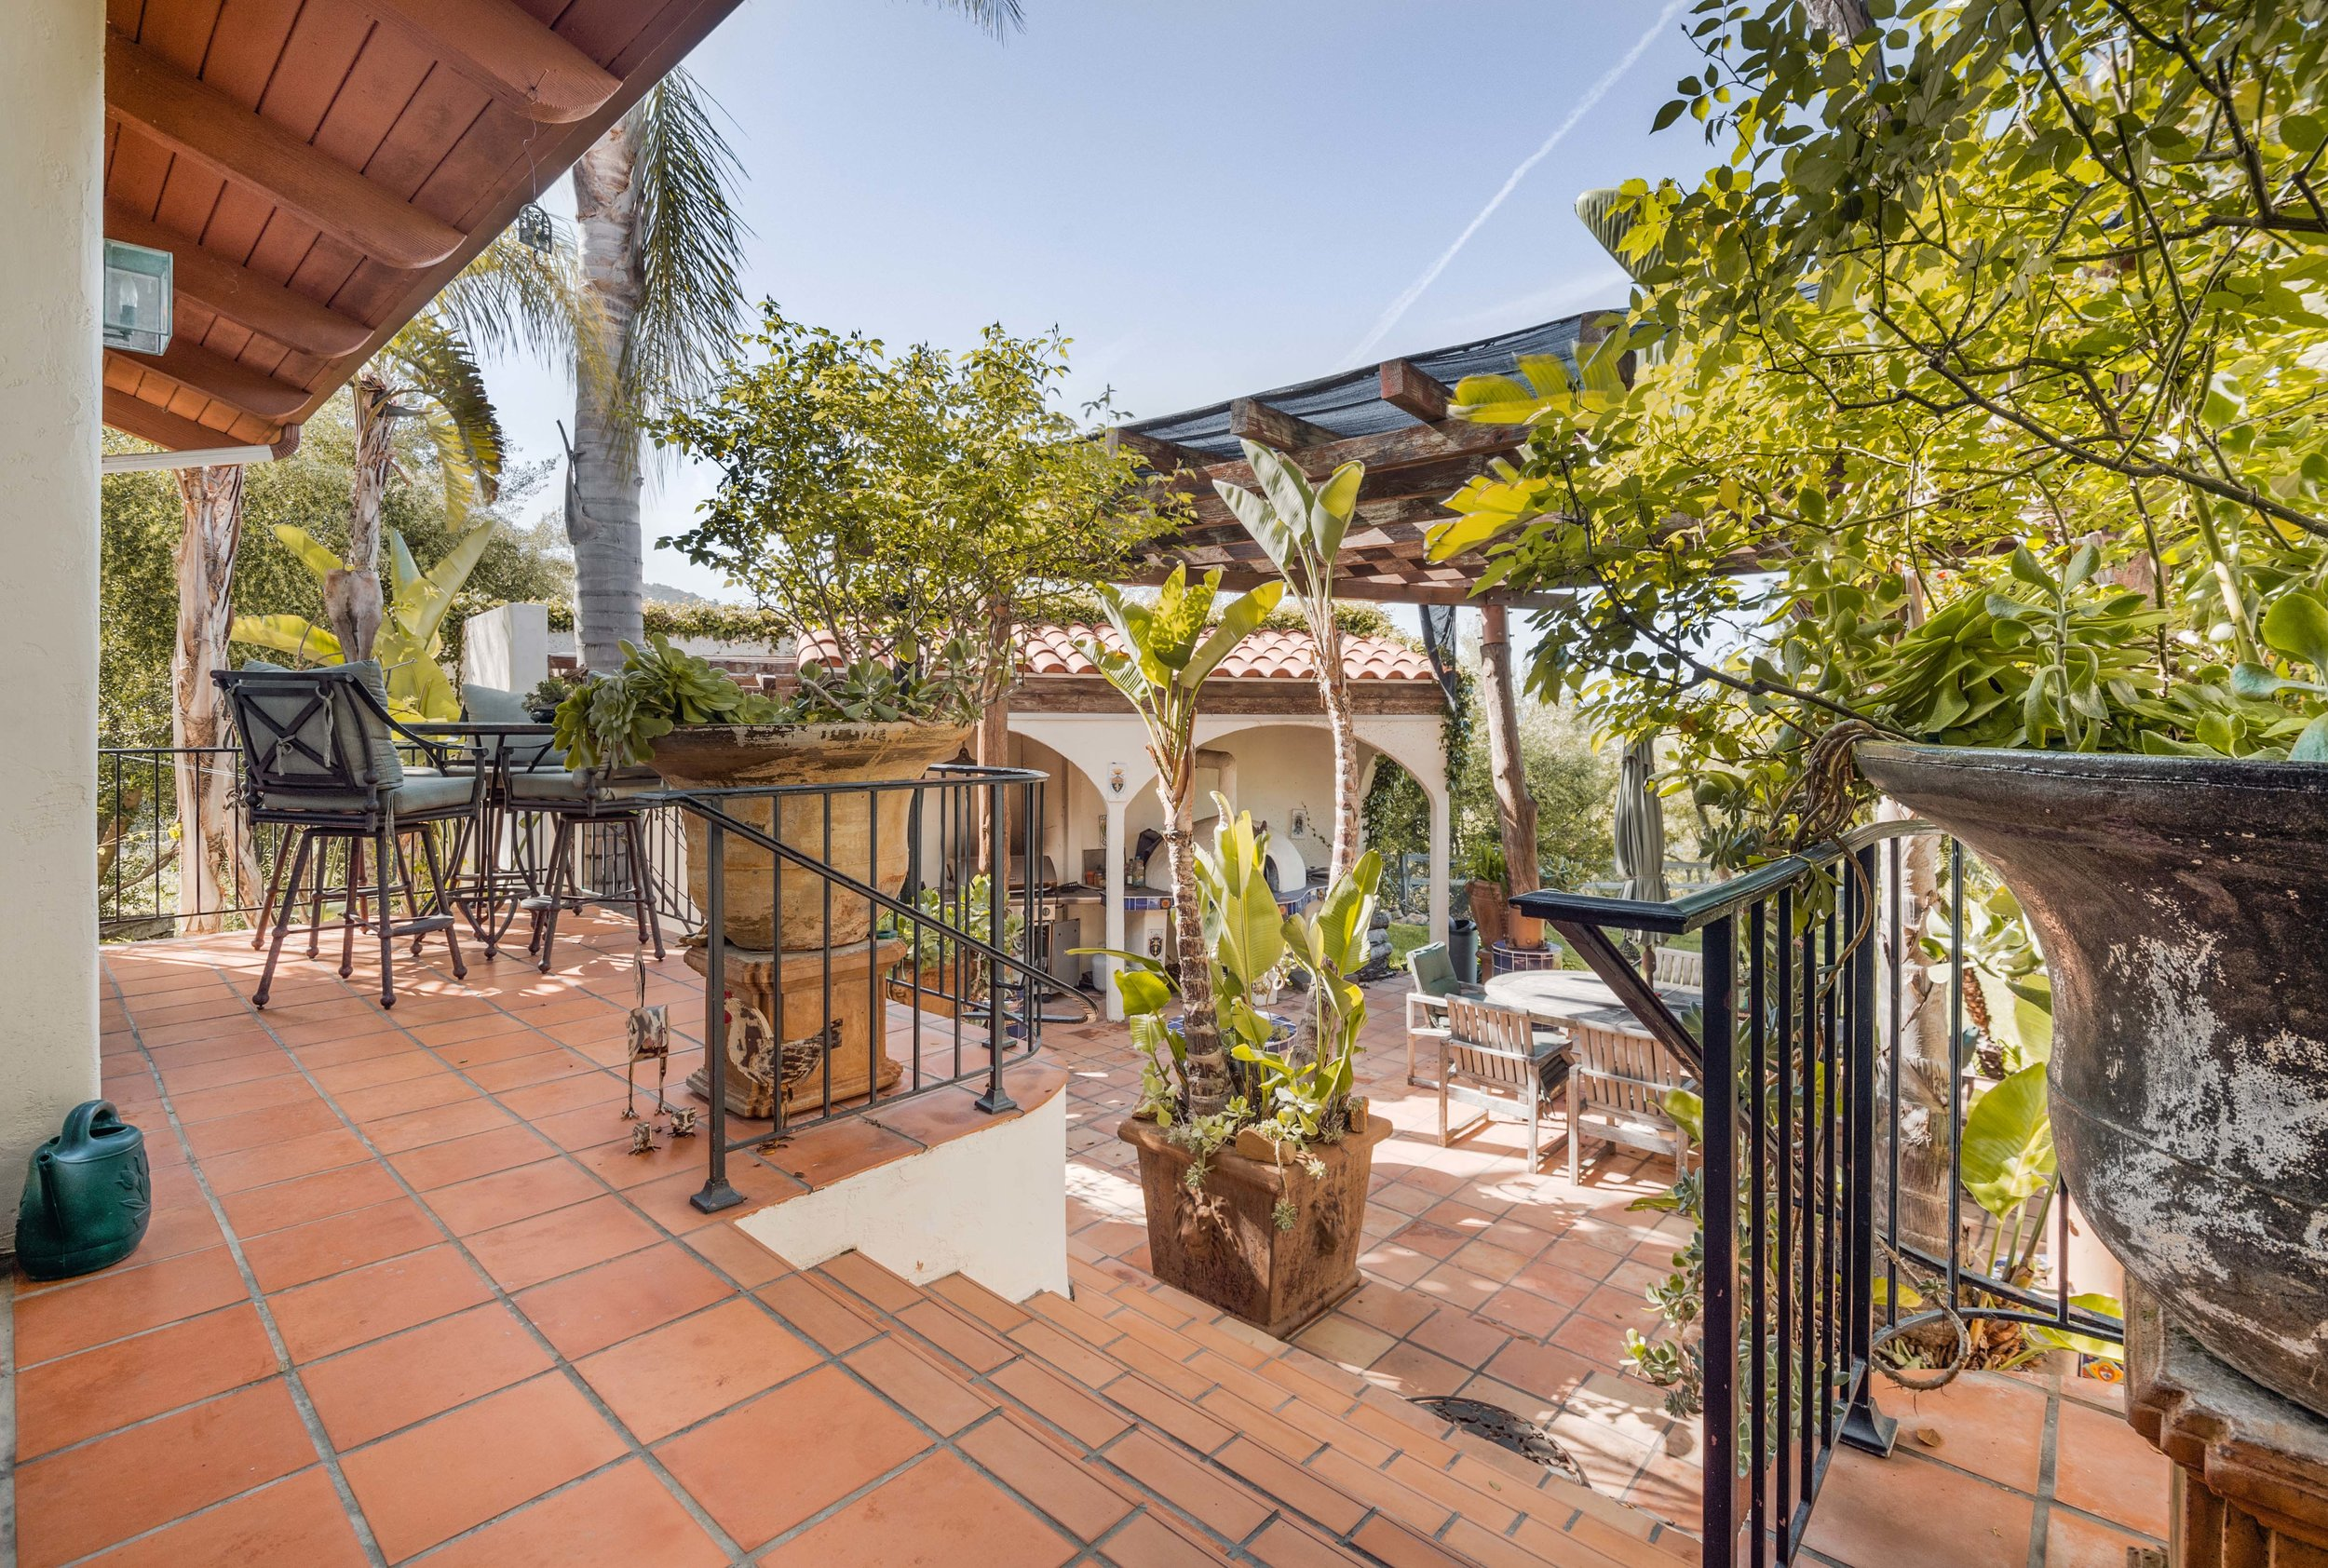 012 Patio 20333 Reigate Road Topanga For Sale Lease The Malibu Life Team Luxury Real Estate.jpg